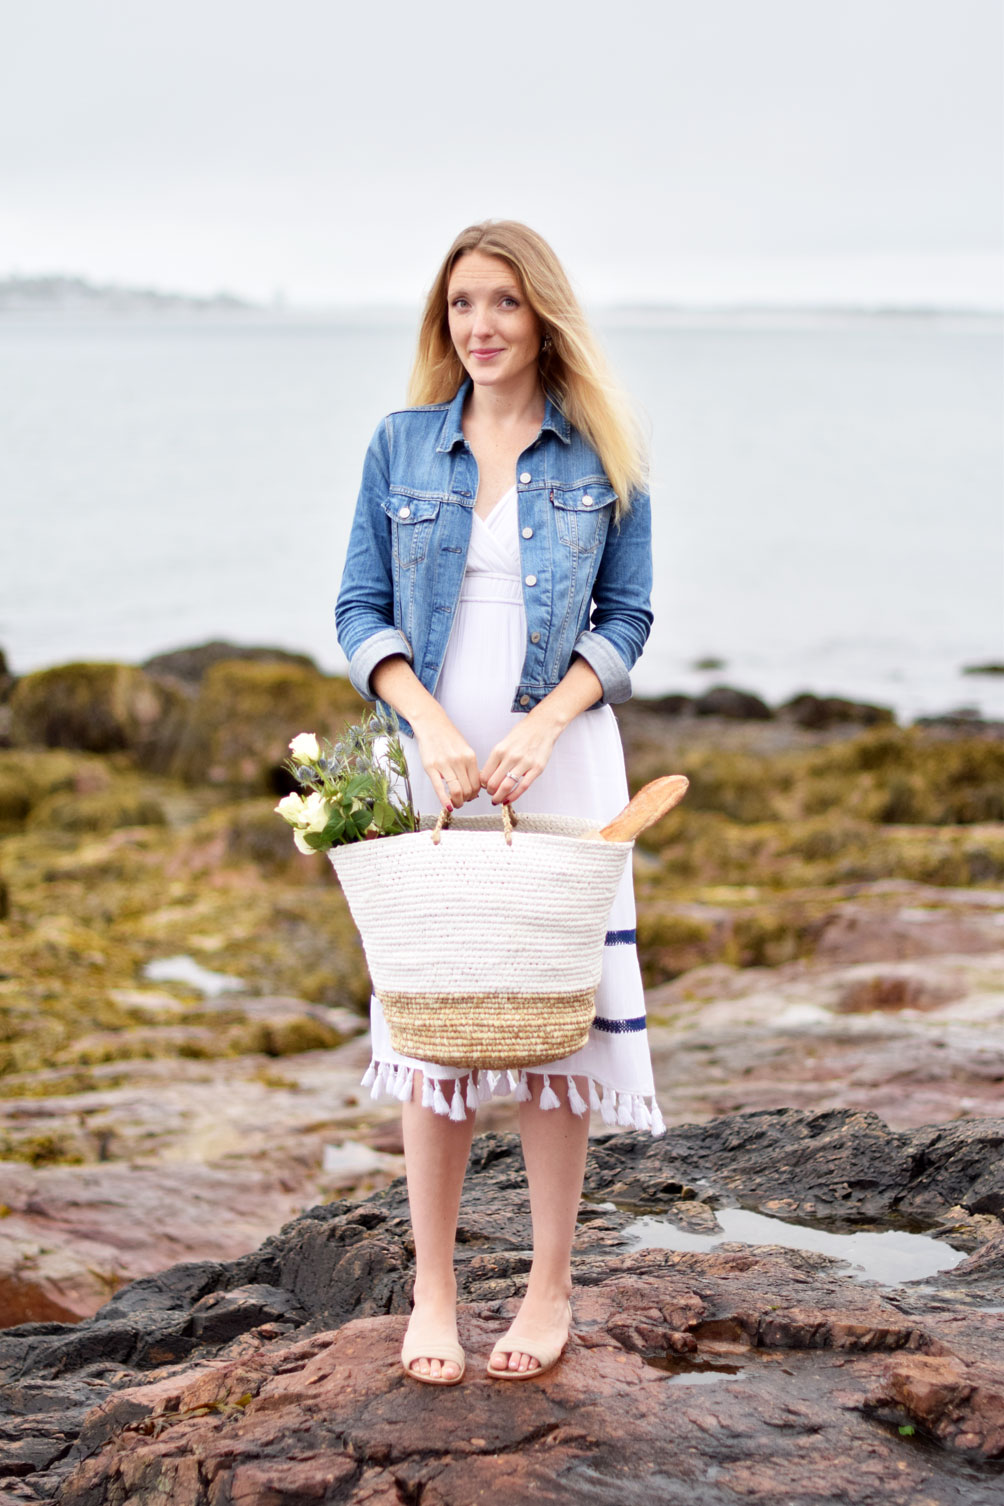 lifestyle blogger Leslie Musser of one brass fox shares how to host the perfect summer picnic with Boston Interiors